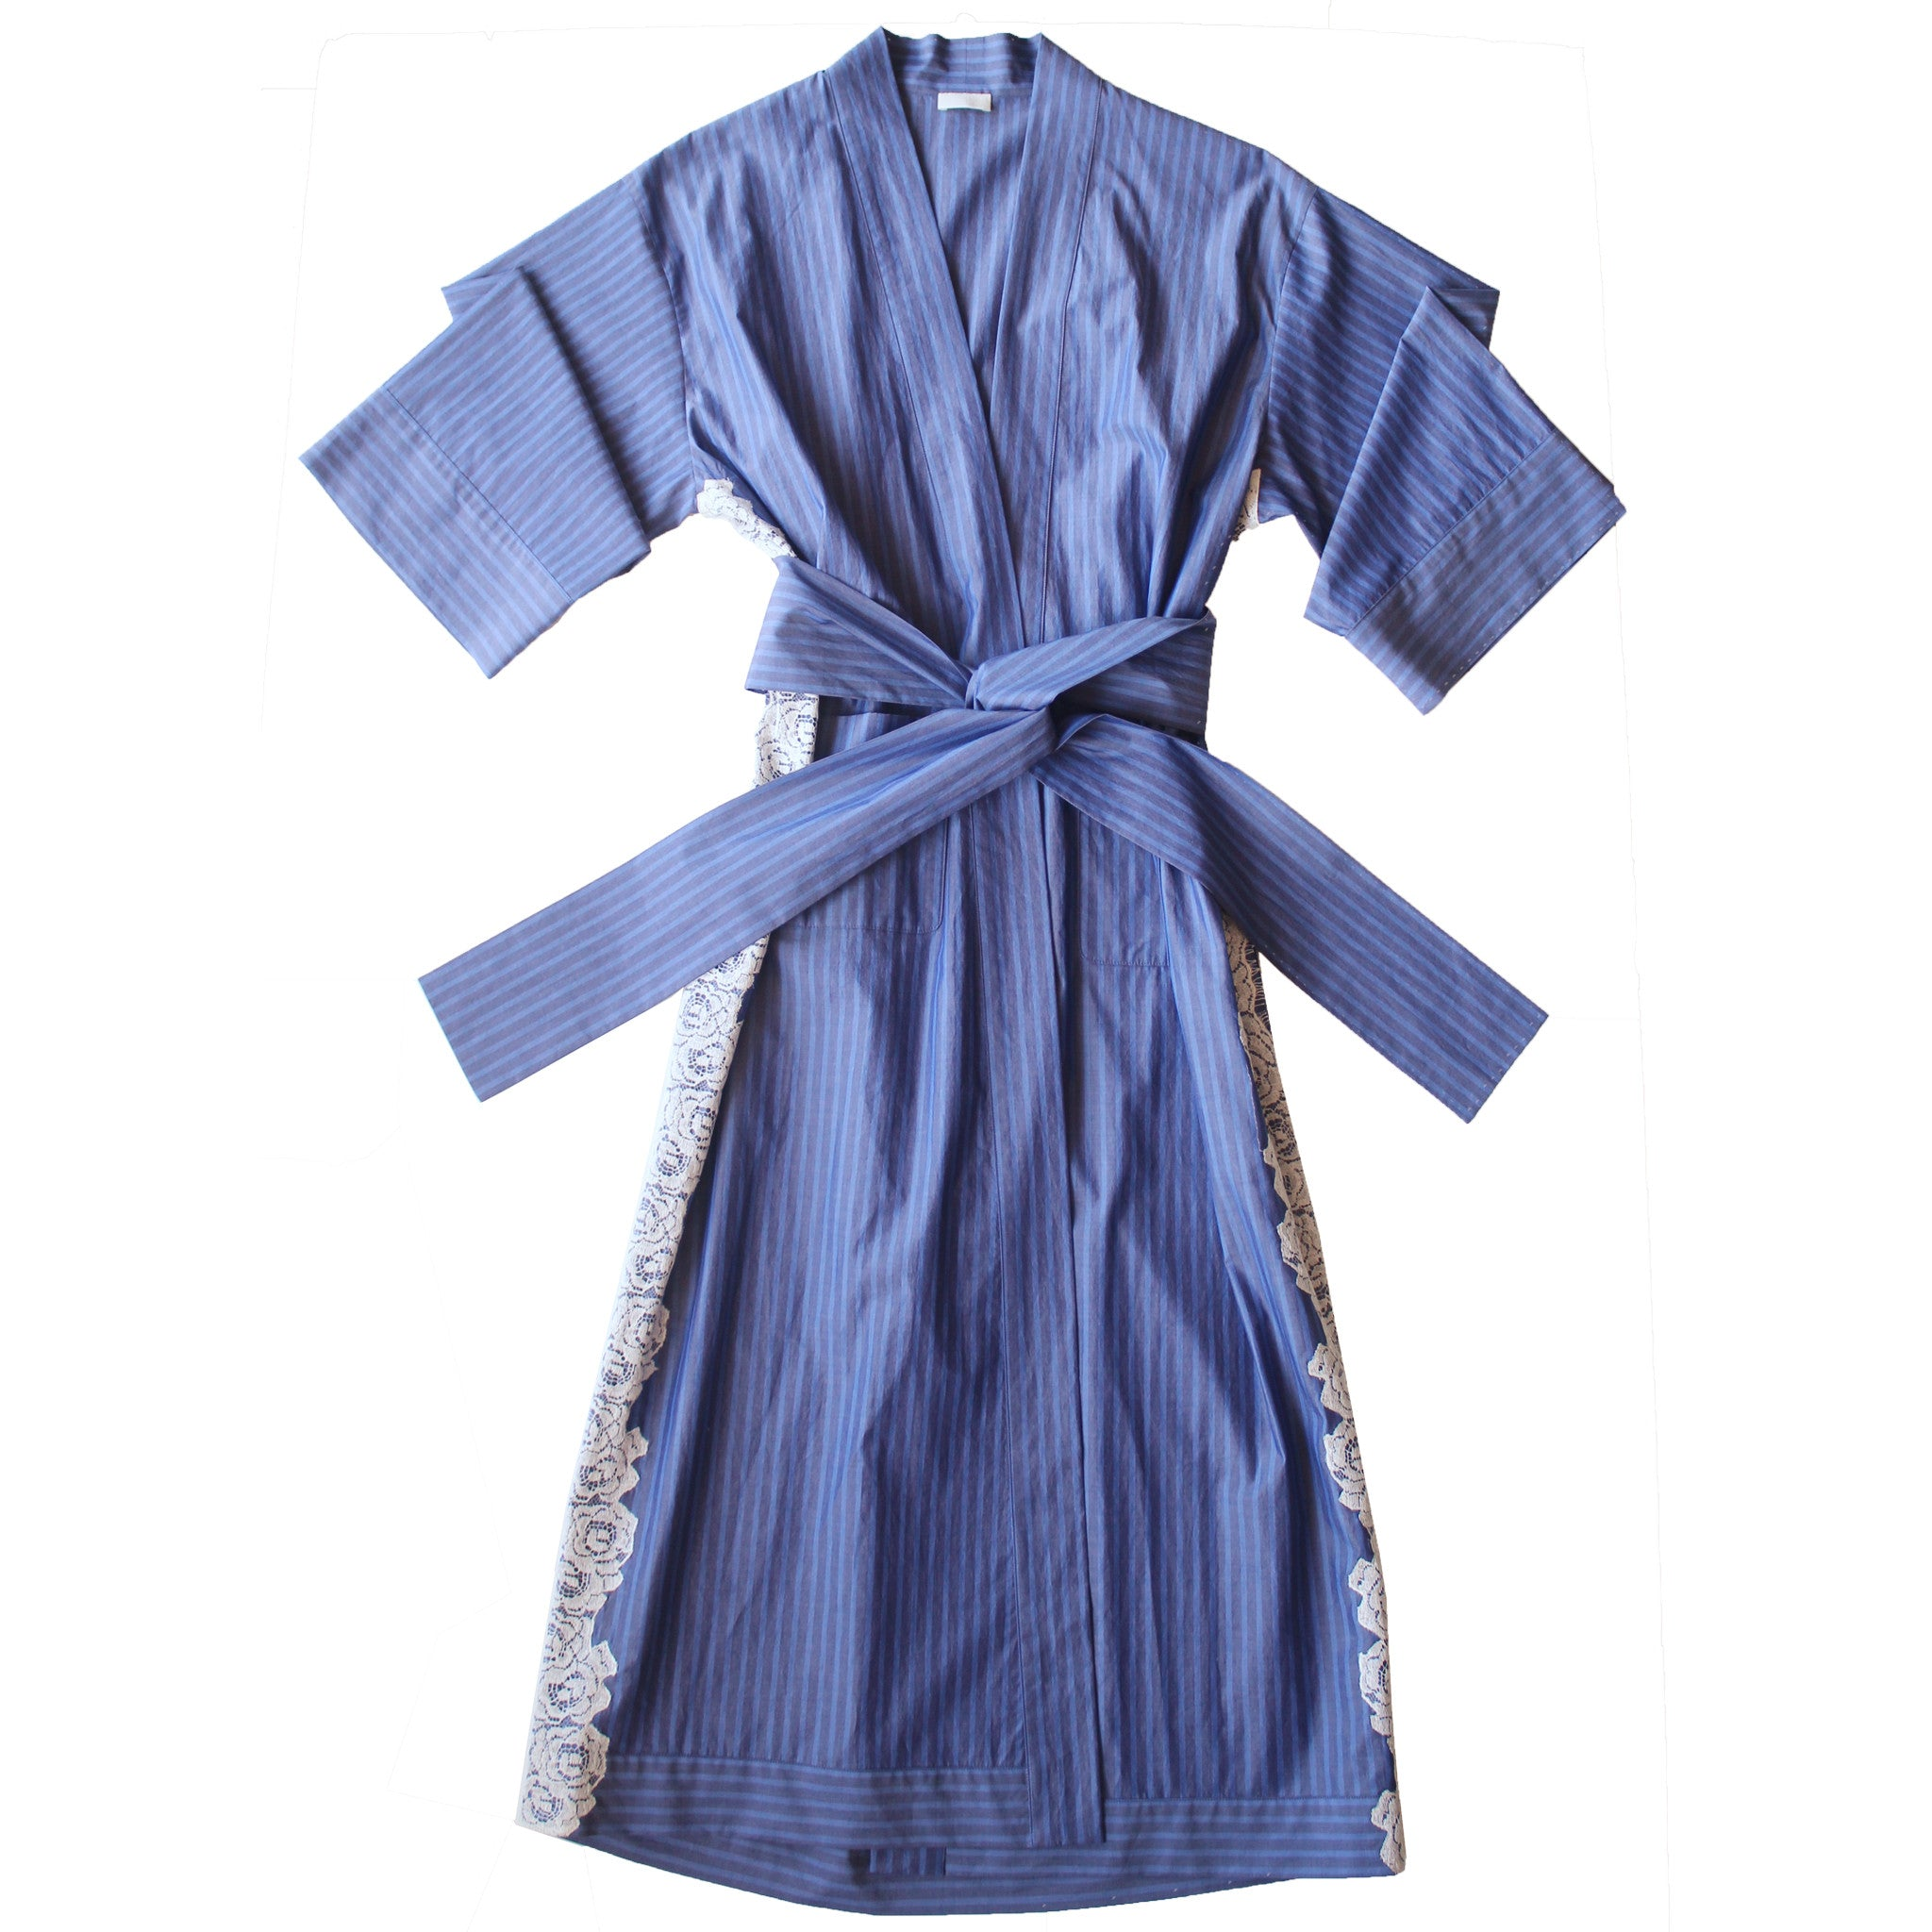 Asteria Kimono Robe in Italian Cotton Grey Blue Stripe